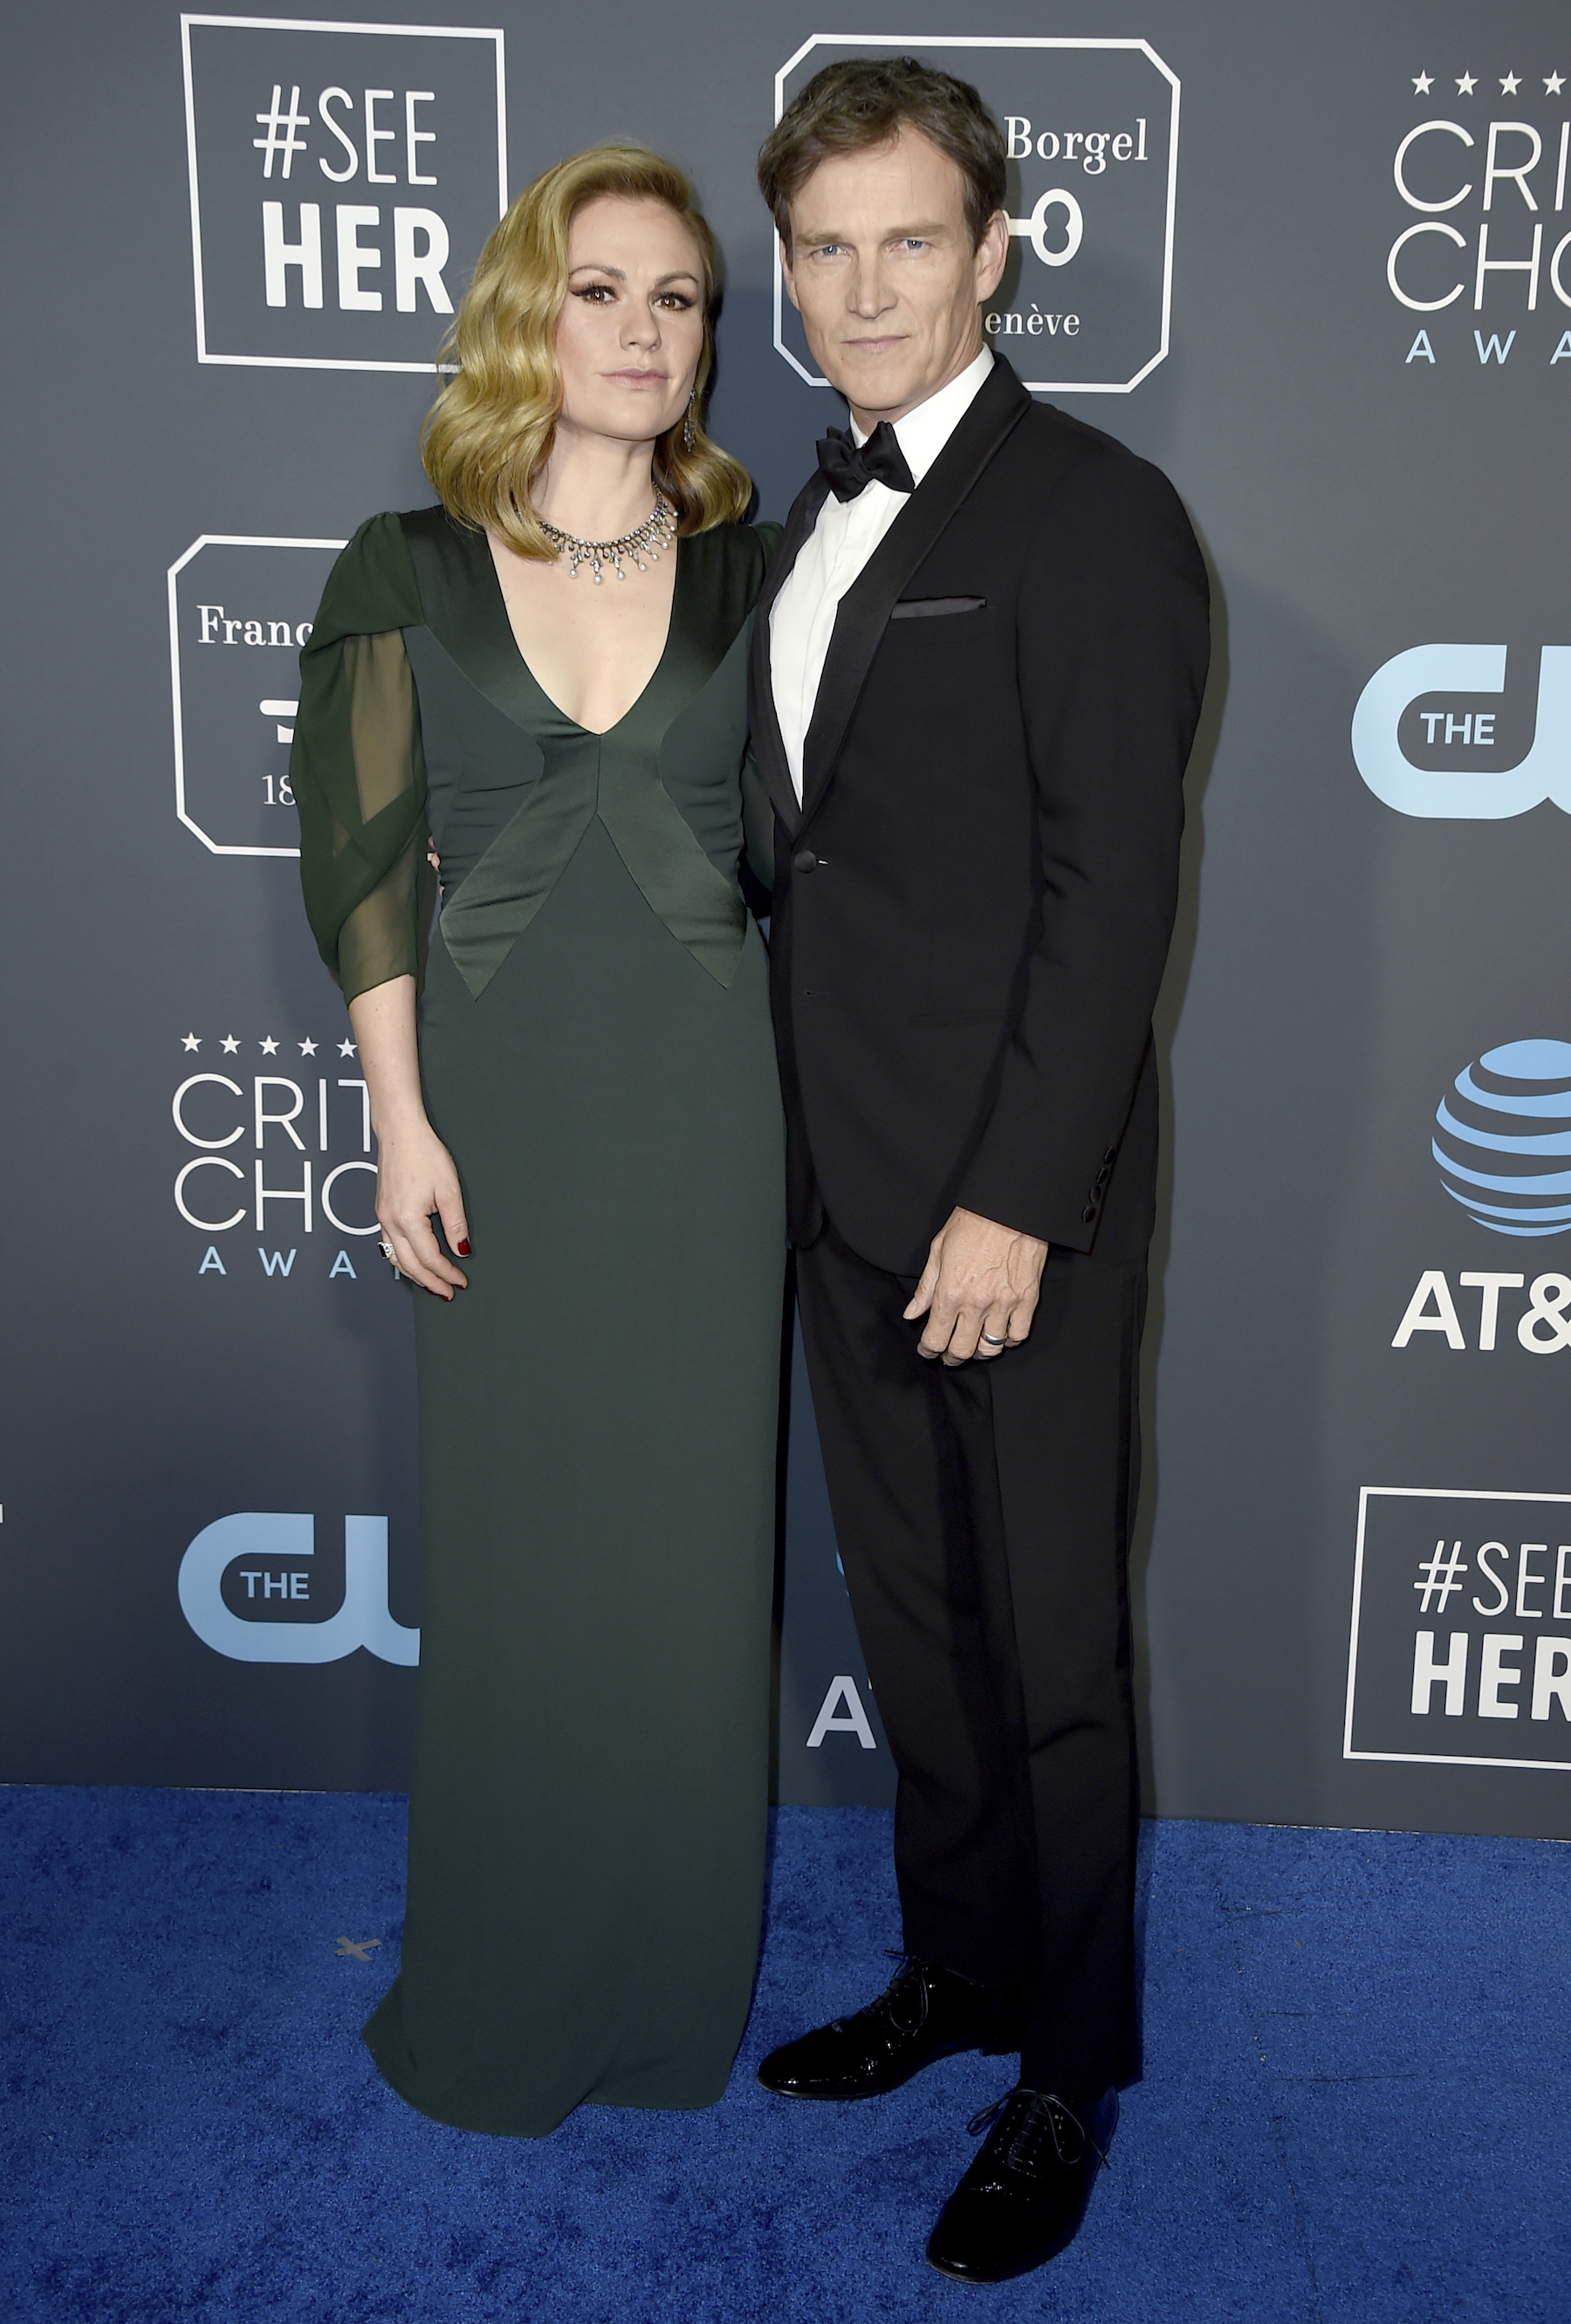 "<div class=""meta image-caption""><div class=""origin-logo origin-image ap""><span>AP</span></div><span class=""caption-text"">Anna Paquin, left, and Stephen Moyer arrive at the 24th annual Critics' Choice Awards on Sunday, Jan. 13, 2019, at the Barker Hangar in Santa Monica, Calif. (Jordan Strauss/Invision/AP)</span></div>"